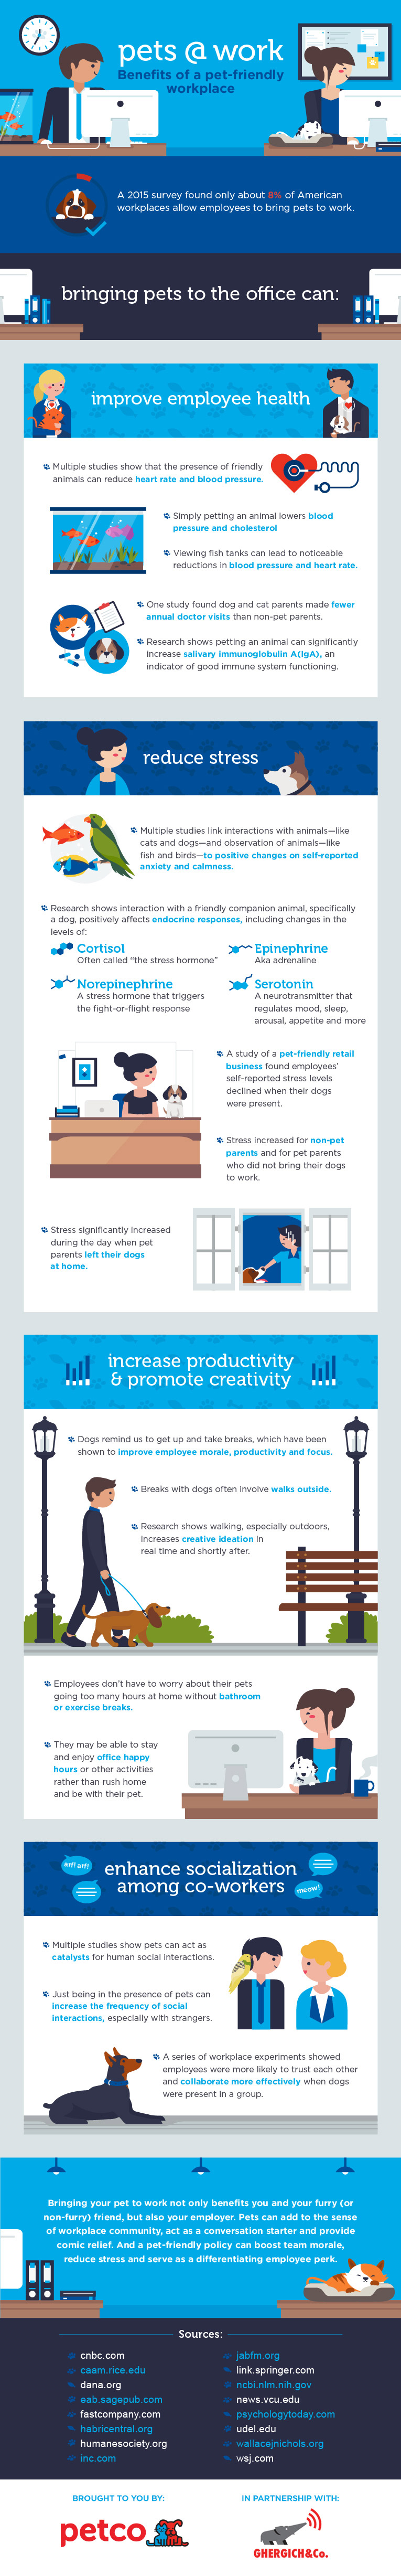 Benefits of a Pet-Friendly Workplace - Petco.